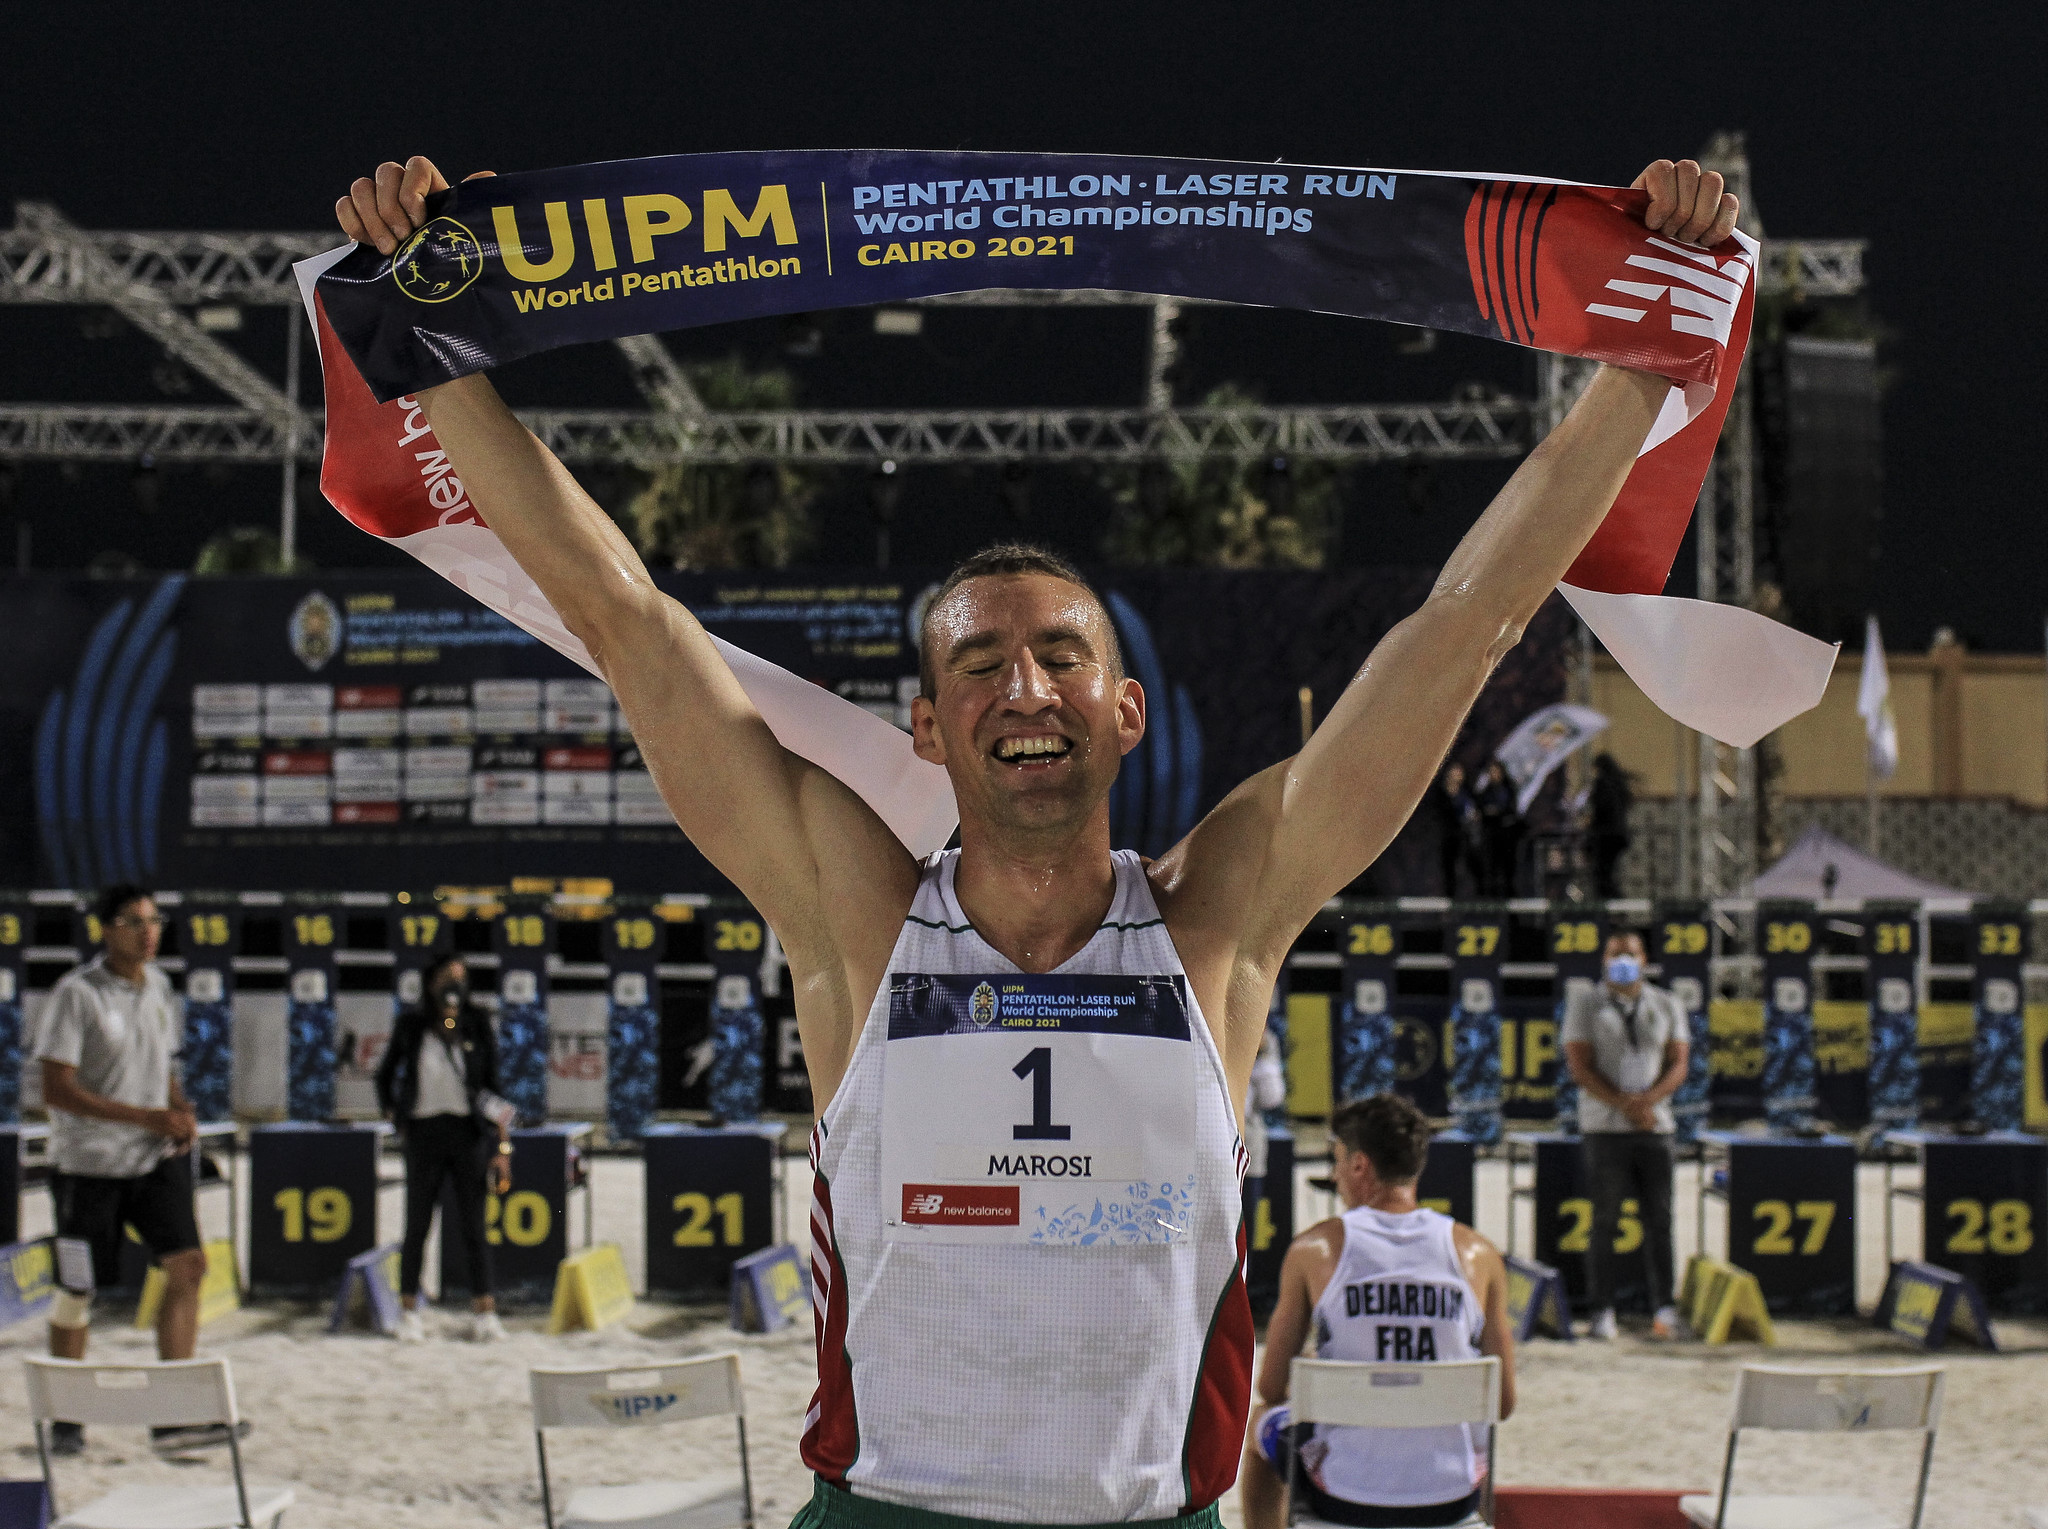 Marosi, 36, wins second career gold at UIPM World Championships in Cairo